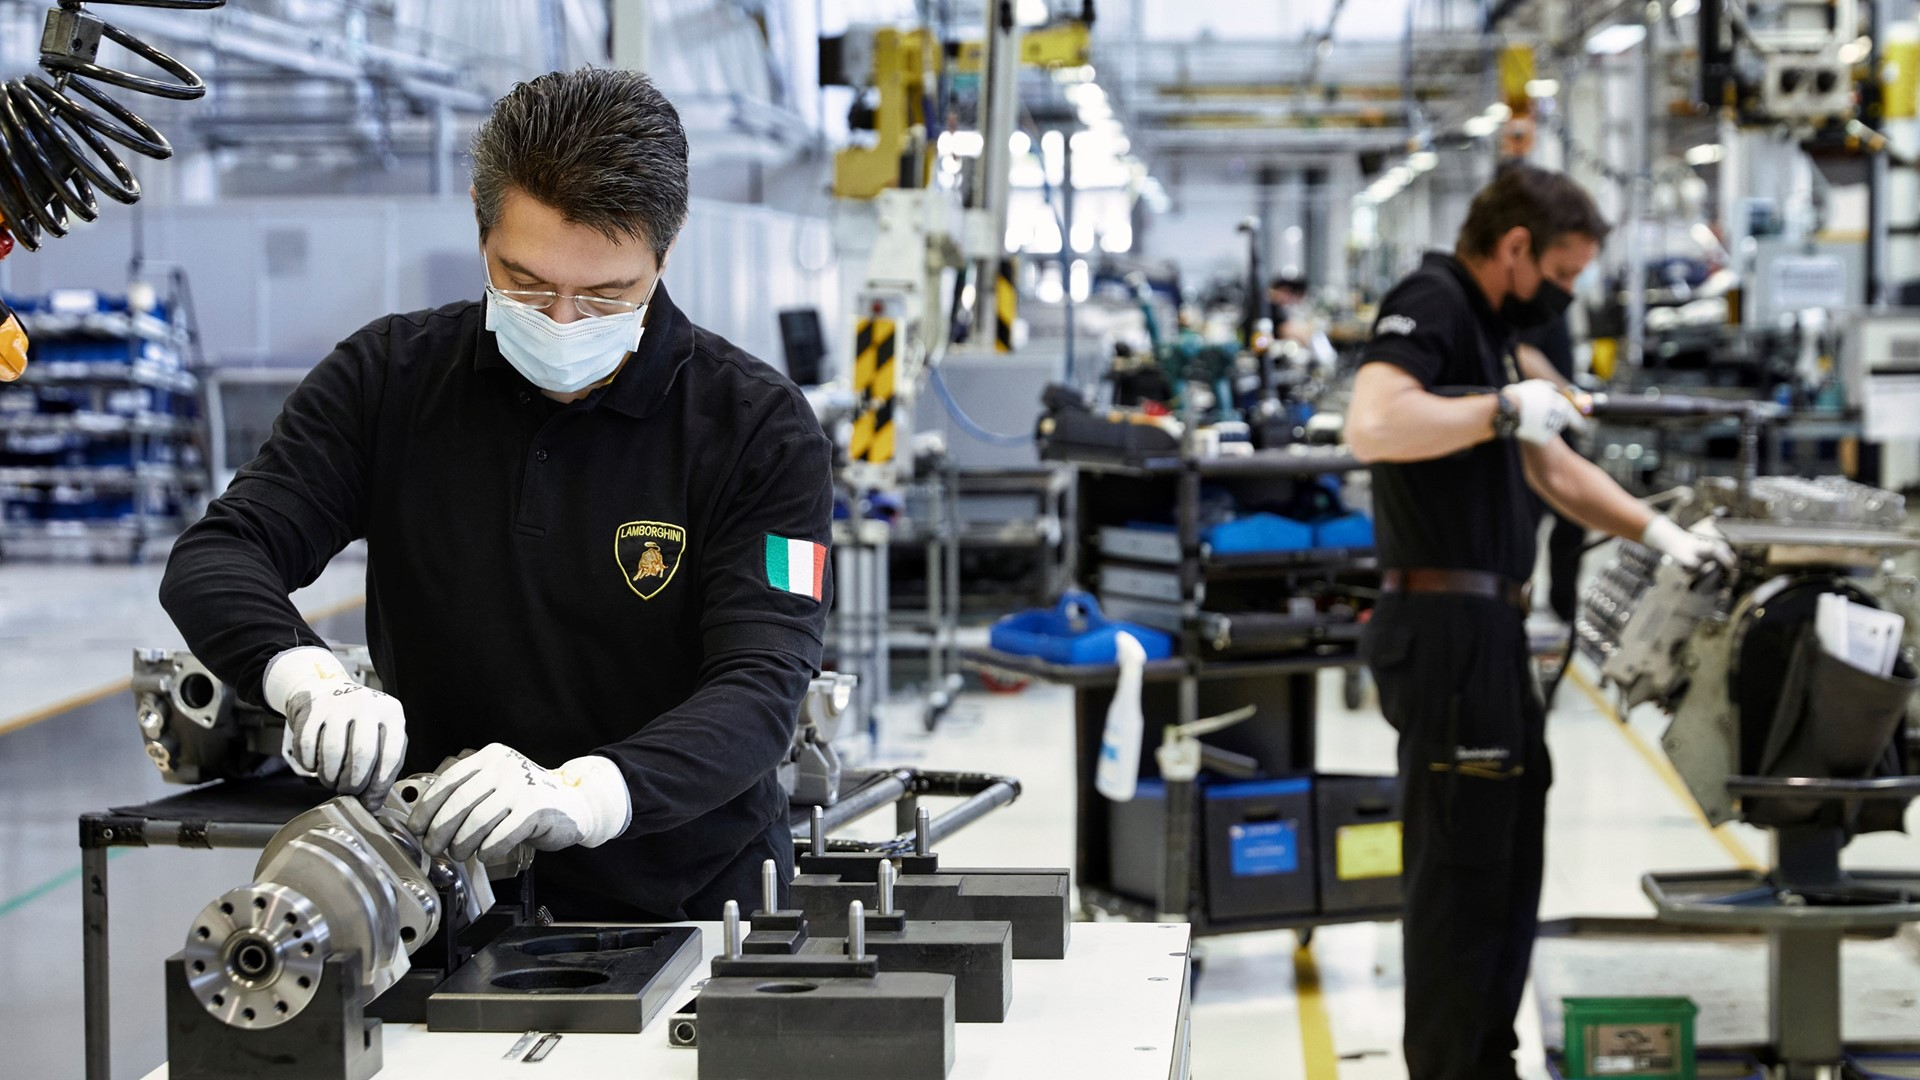 Automobili Lamborghini prepares to restart production on May 4 with people-safety foremost - Image 1